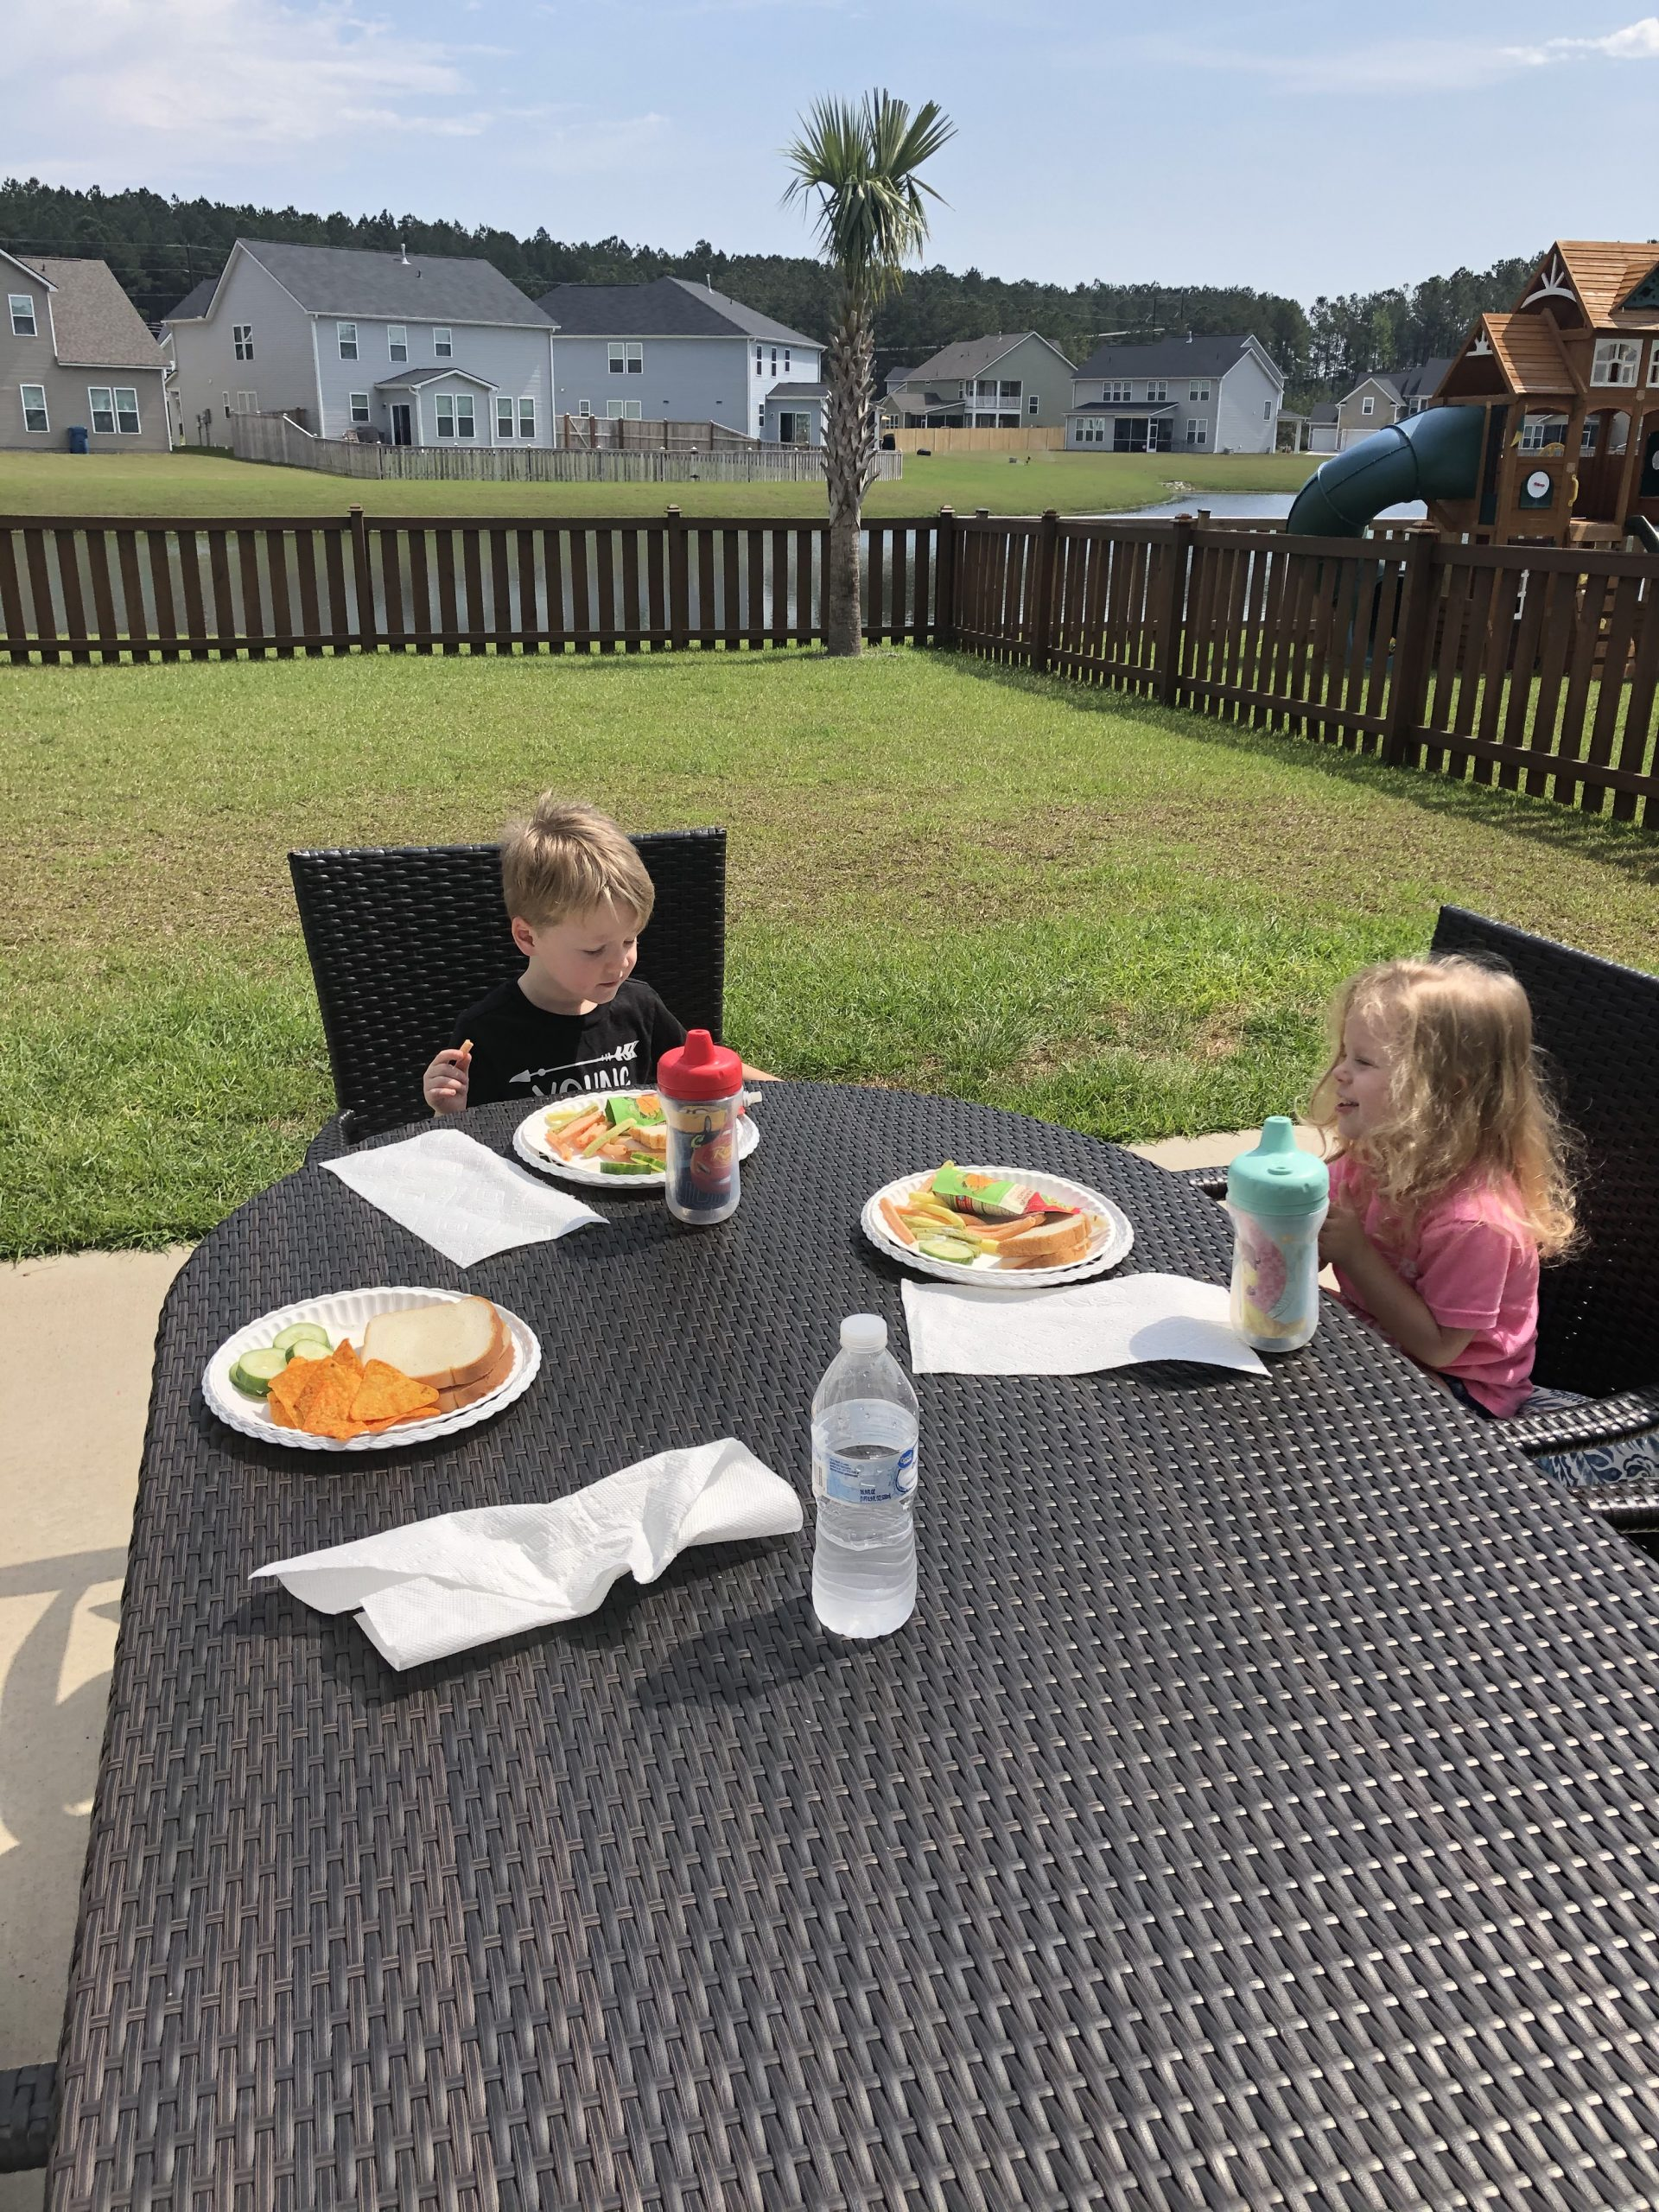 Boy and girl outside at table having lunch.